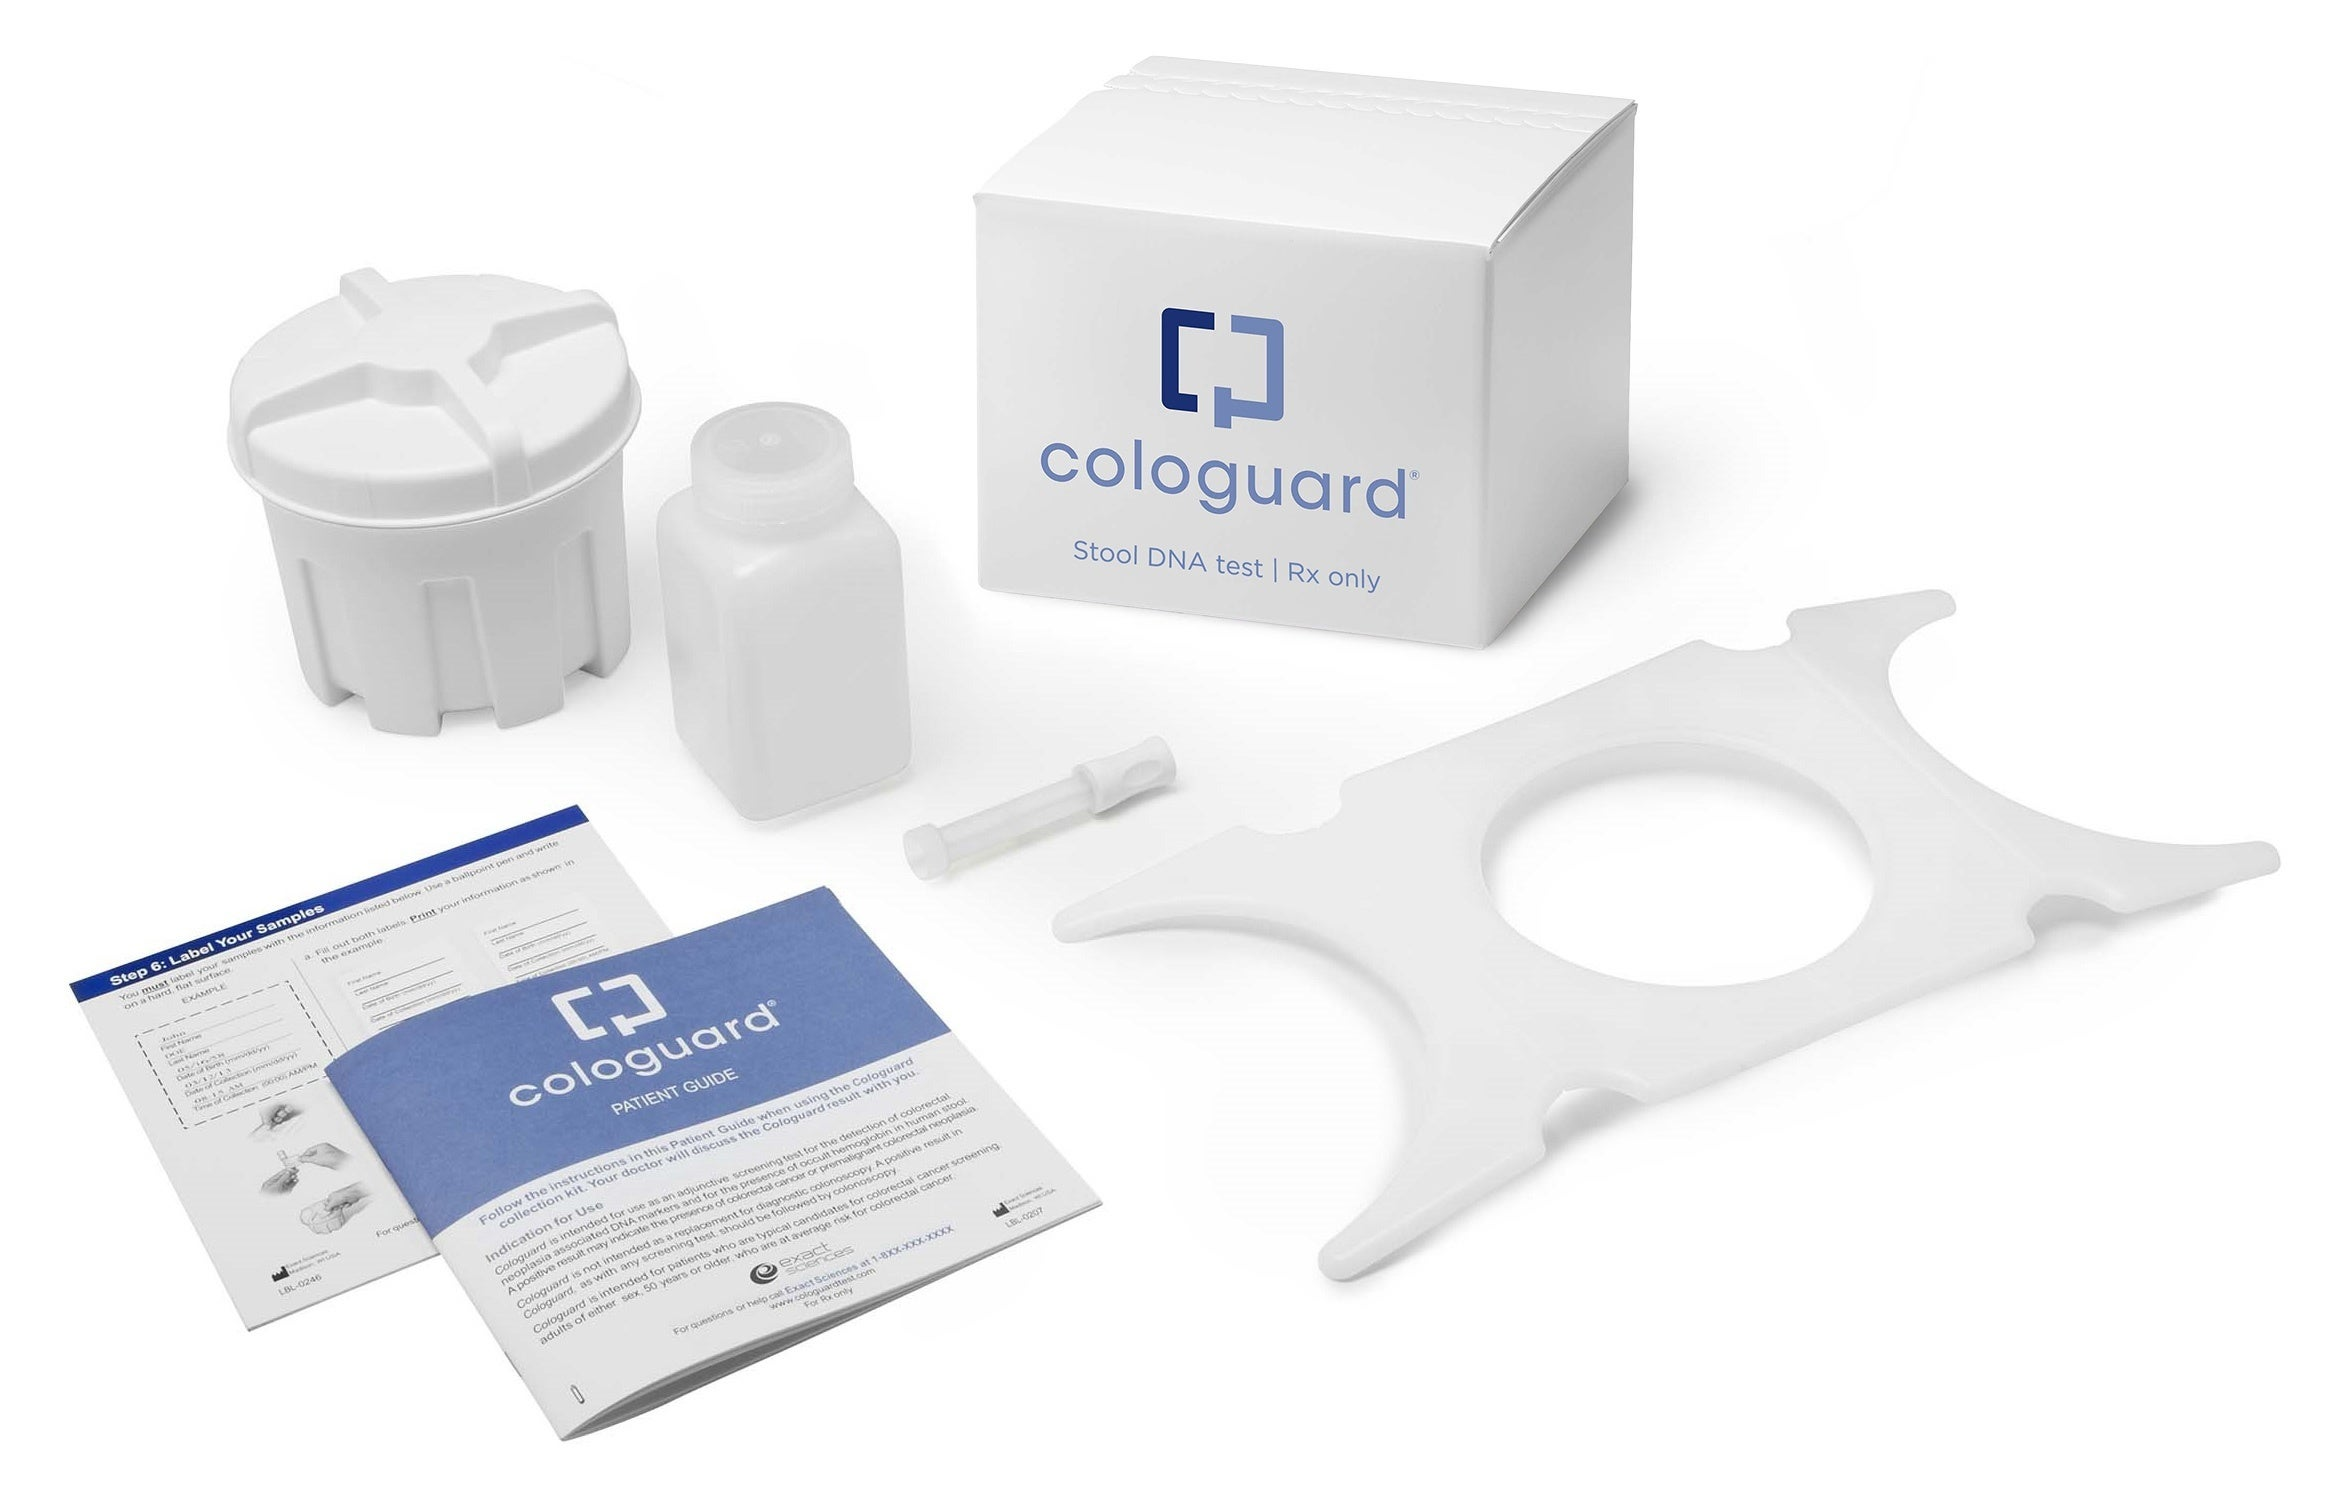 20 Million More Potential Customers for Cologuard: Time to